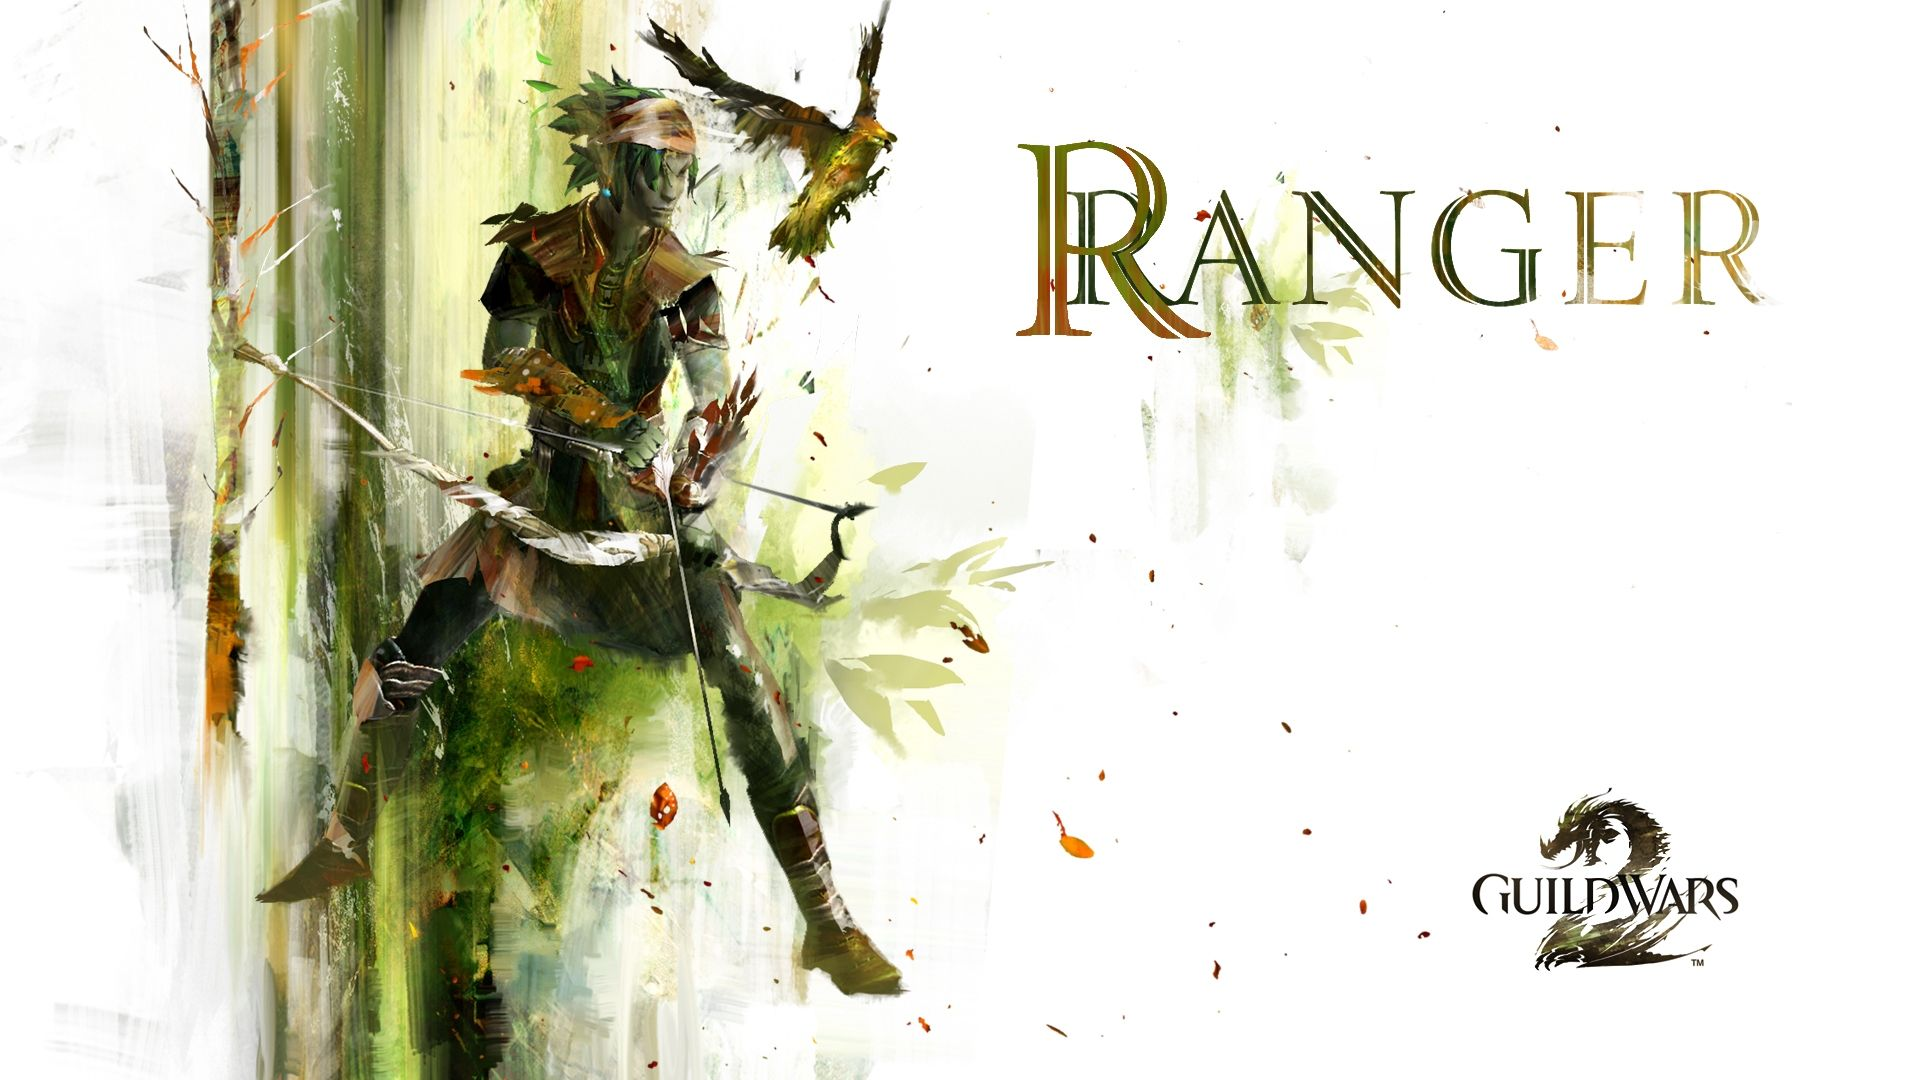 The Ranger - bring your companion and head straight to the heat of the battle!